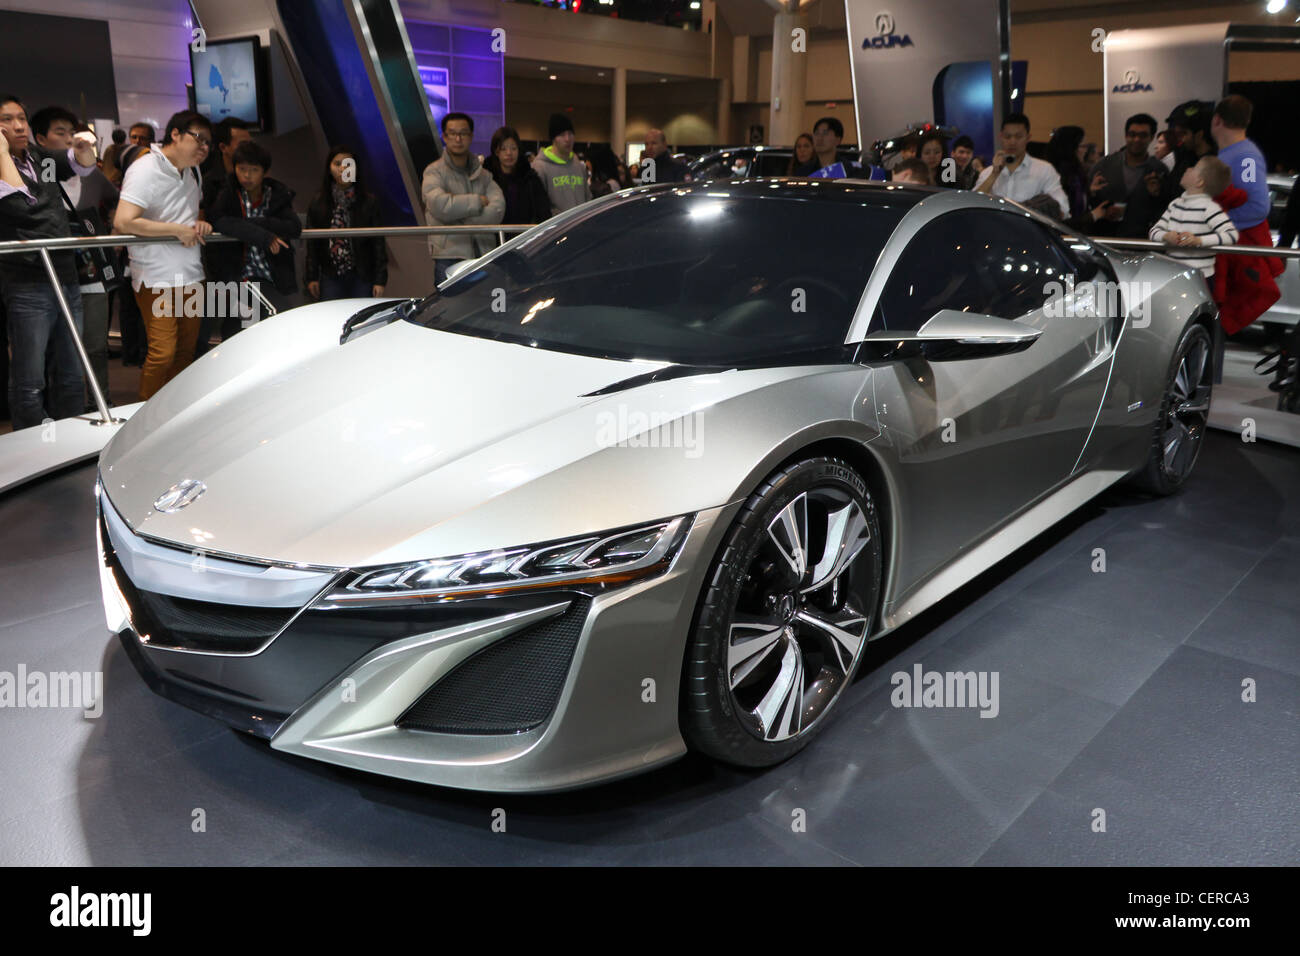 Acura Nsx Concept Stock Photos Images Alamy Advanced Sports Car Luxury Expensive Image